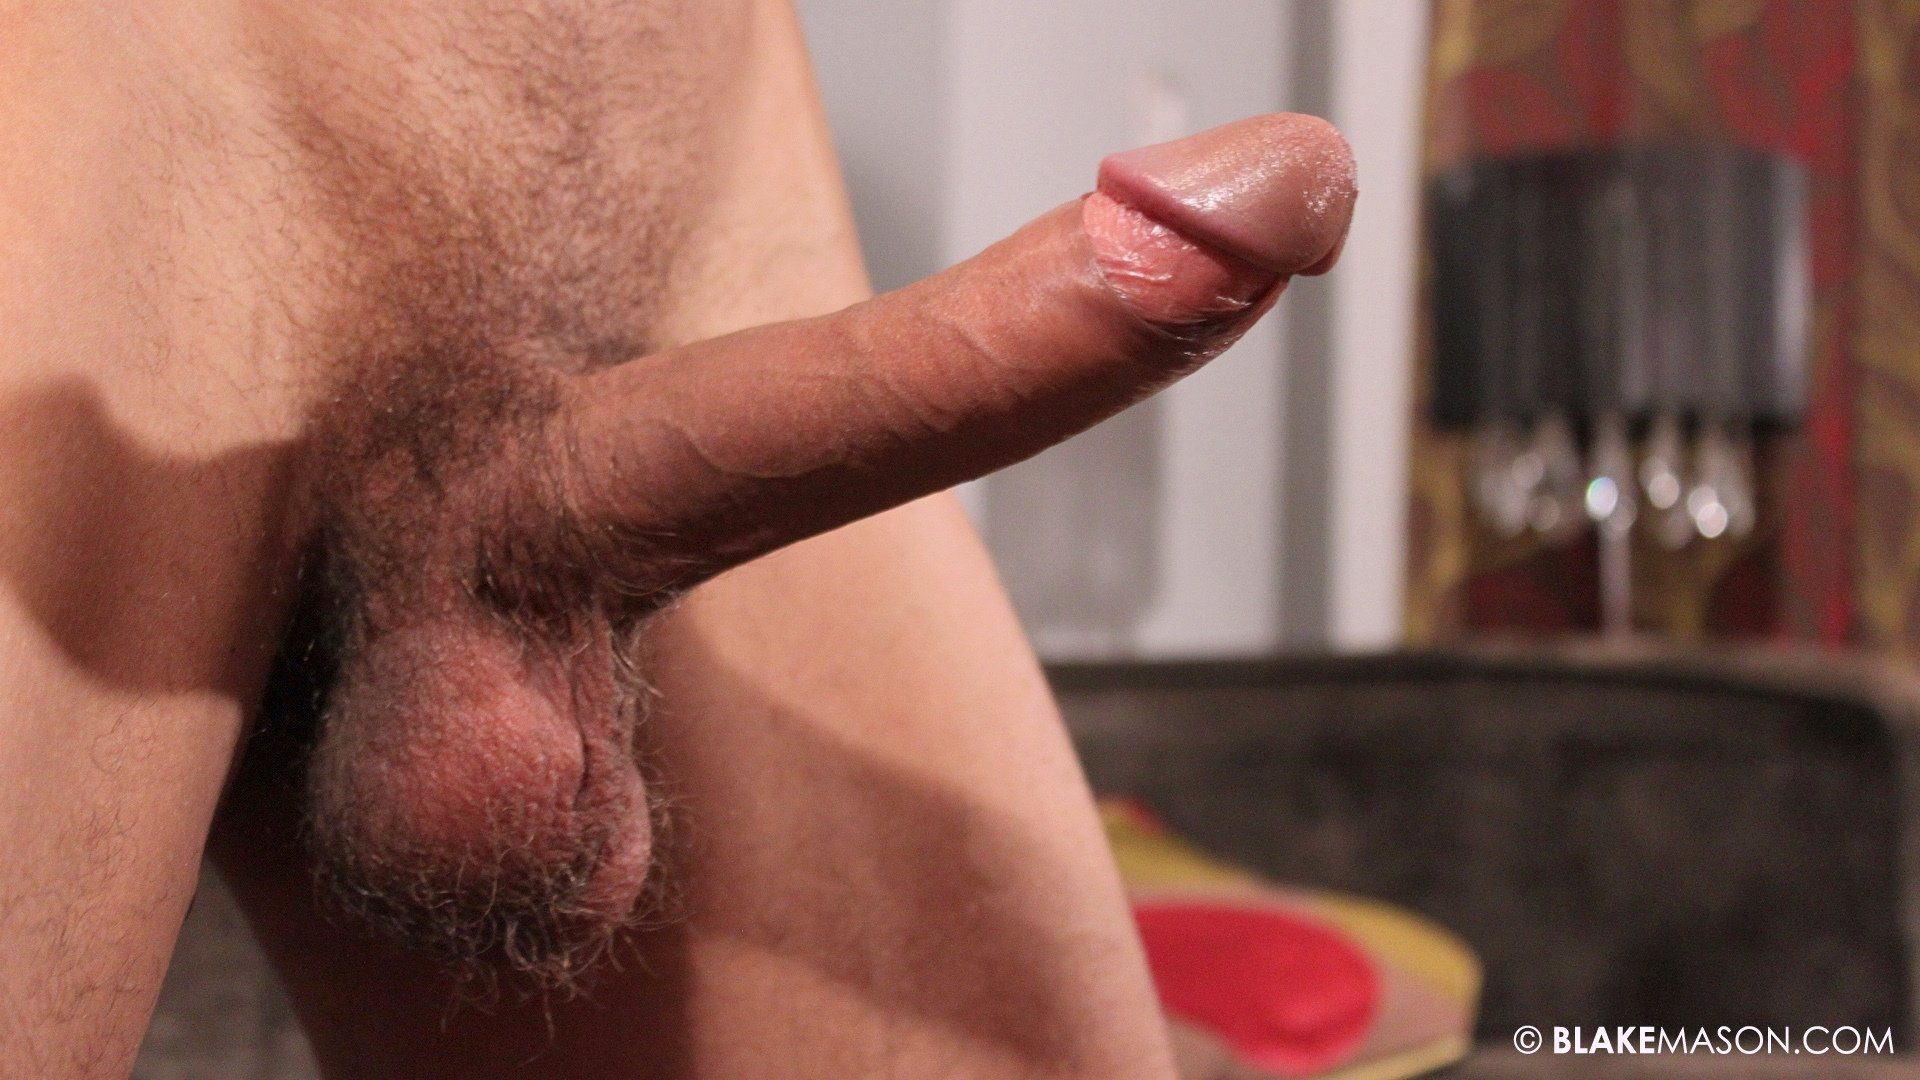 His penis is so big, and my vagina is so small, we have to use lube